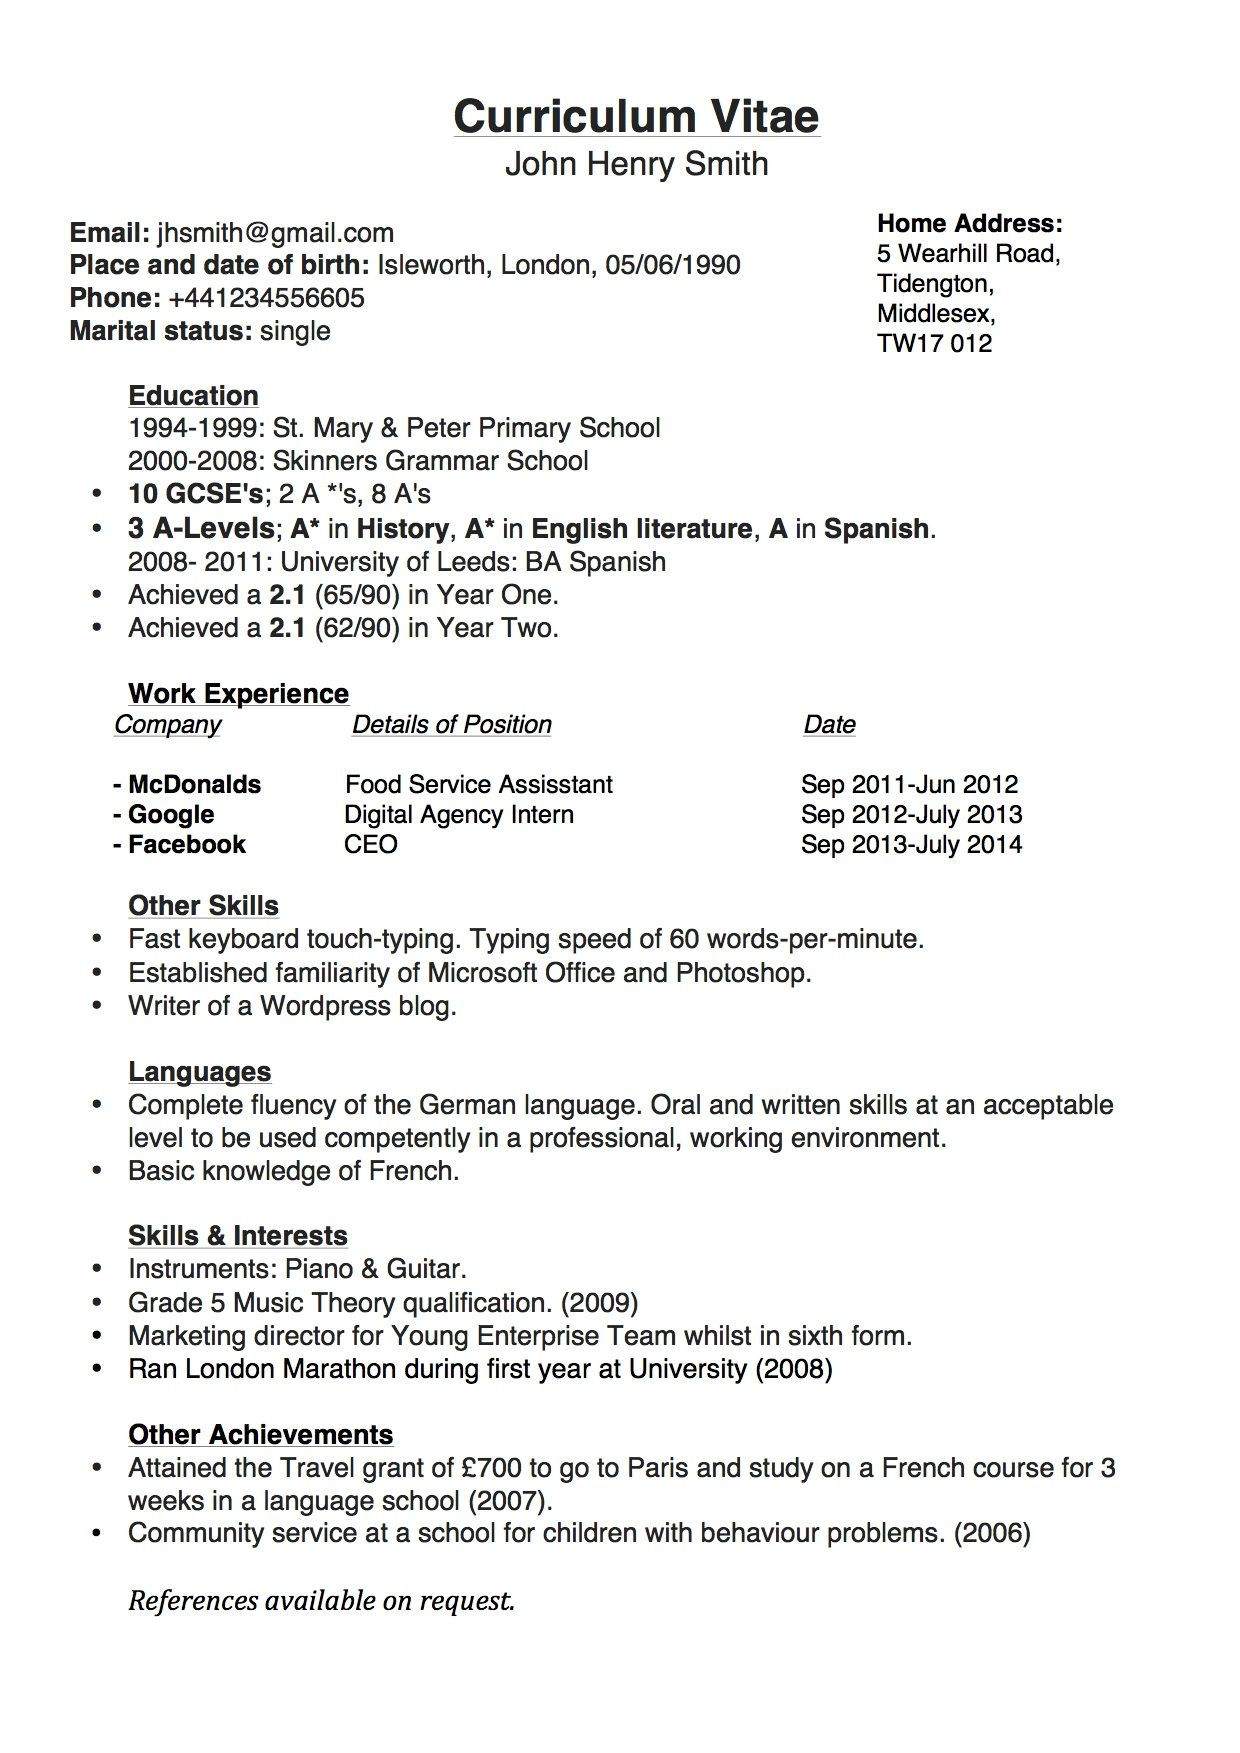 curriculum vitae template - Google Search | resumes | Pinterest